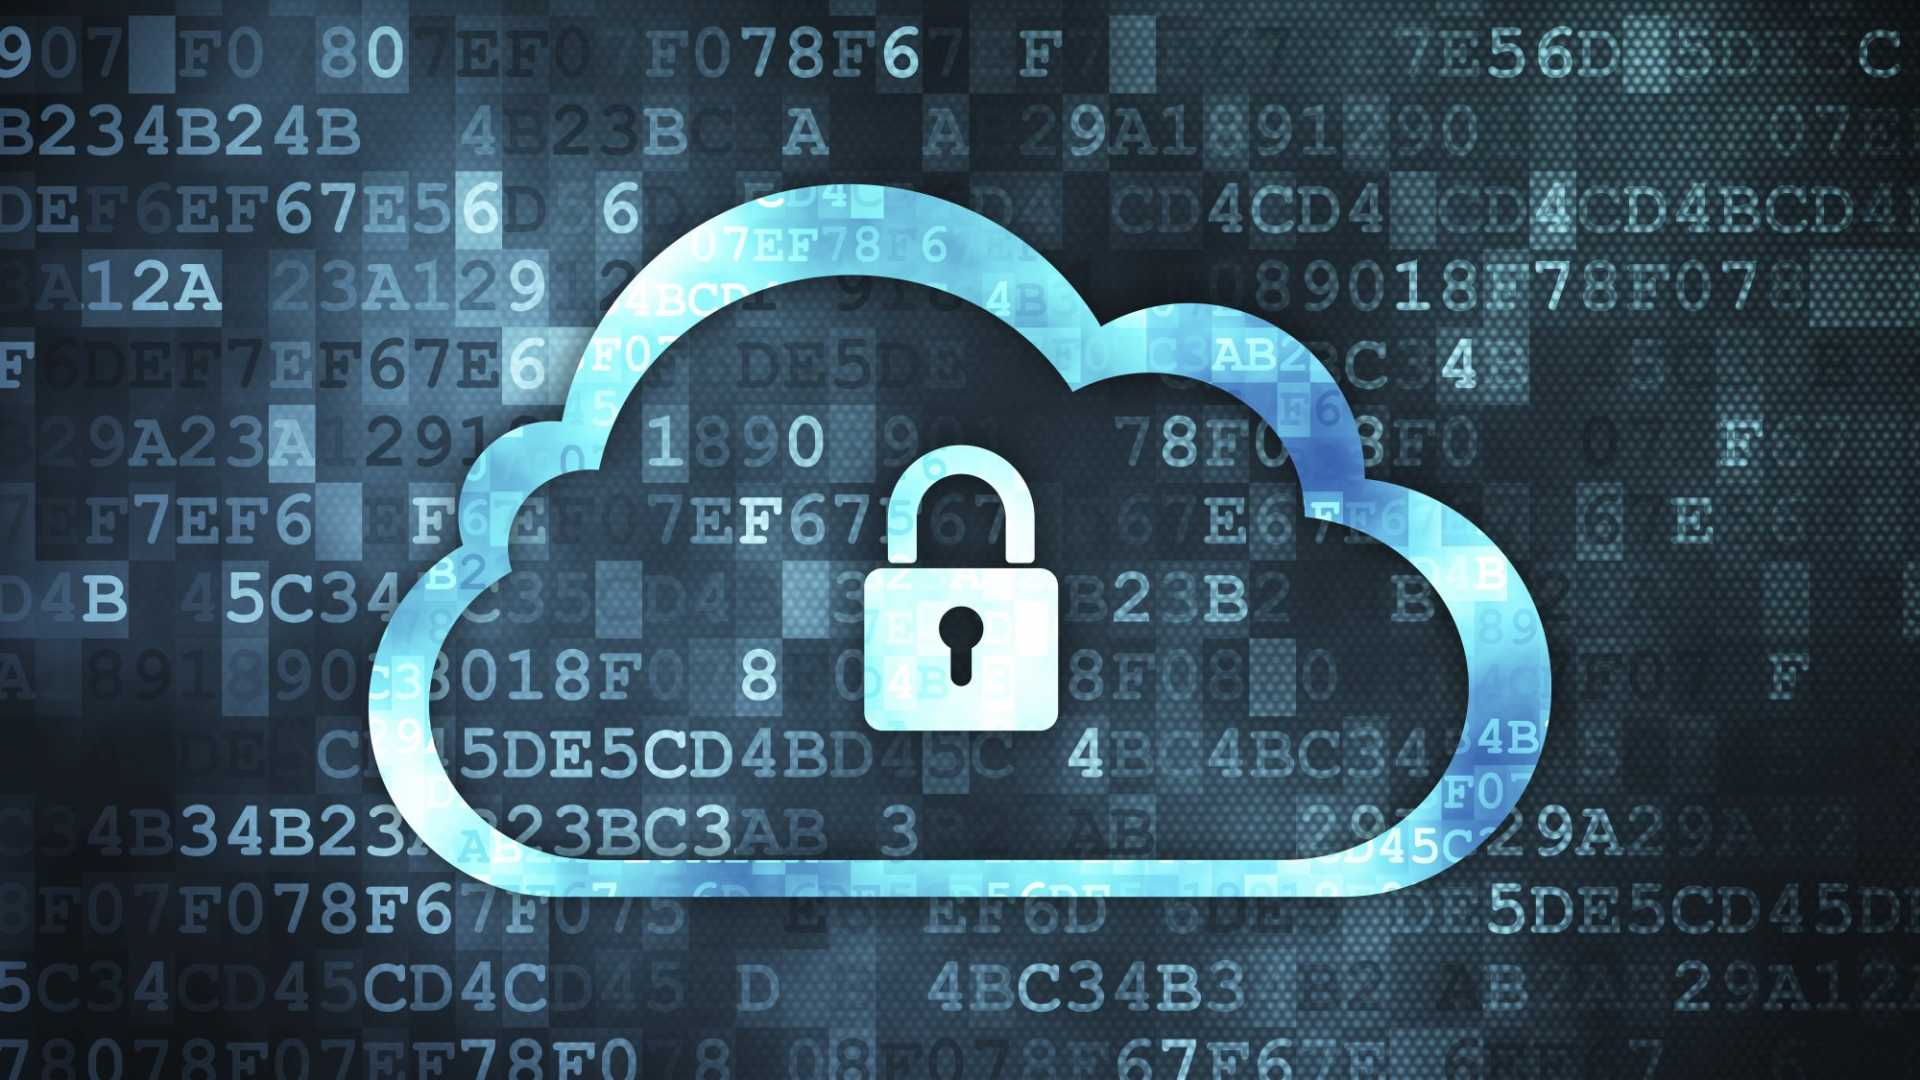 Apple Wants to Make iCloud Data So Secure Even Apple Won't Be Able to Access It